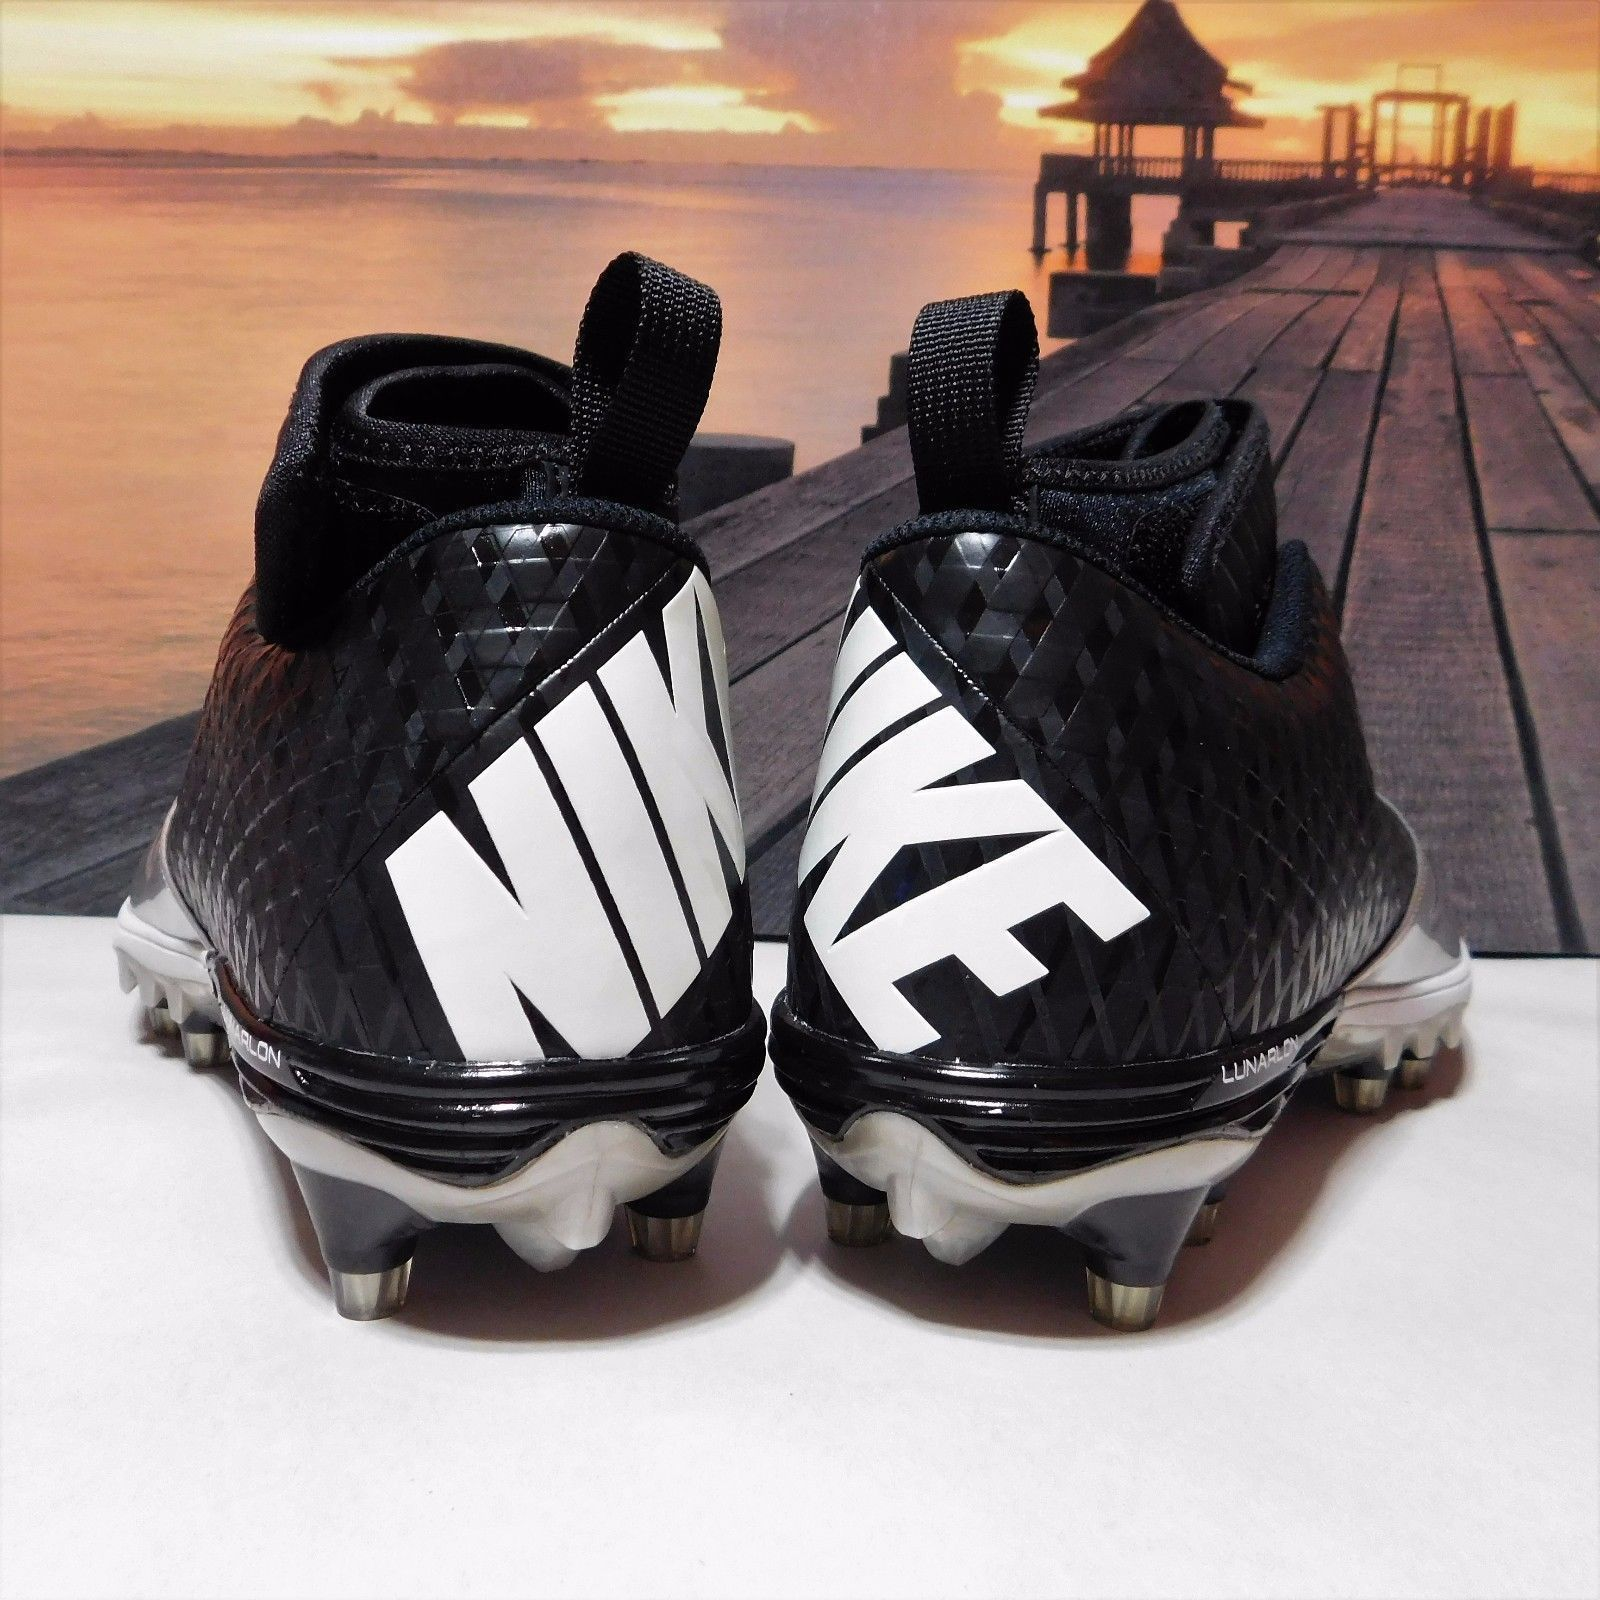 a54d8bf45 New Mens 11.5 Nike Lunar Superbad Pro TD Football Cleats Black Silver  534994-023